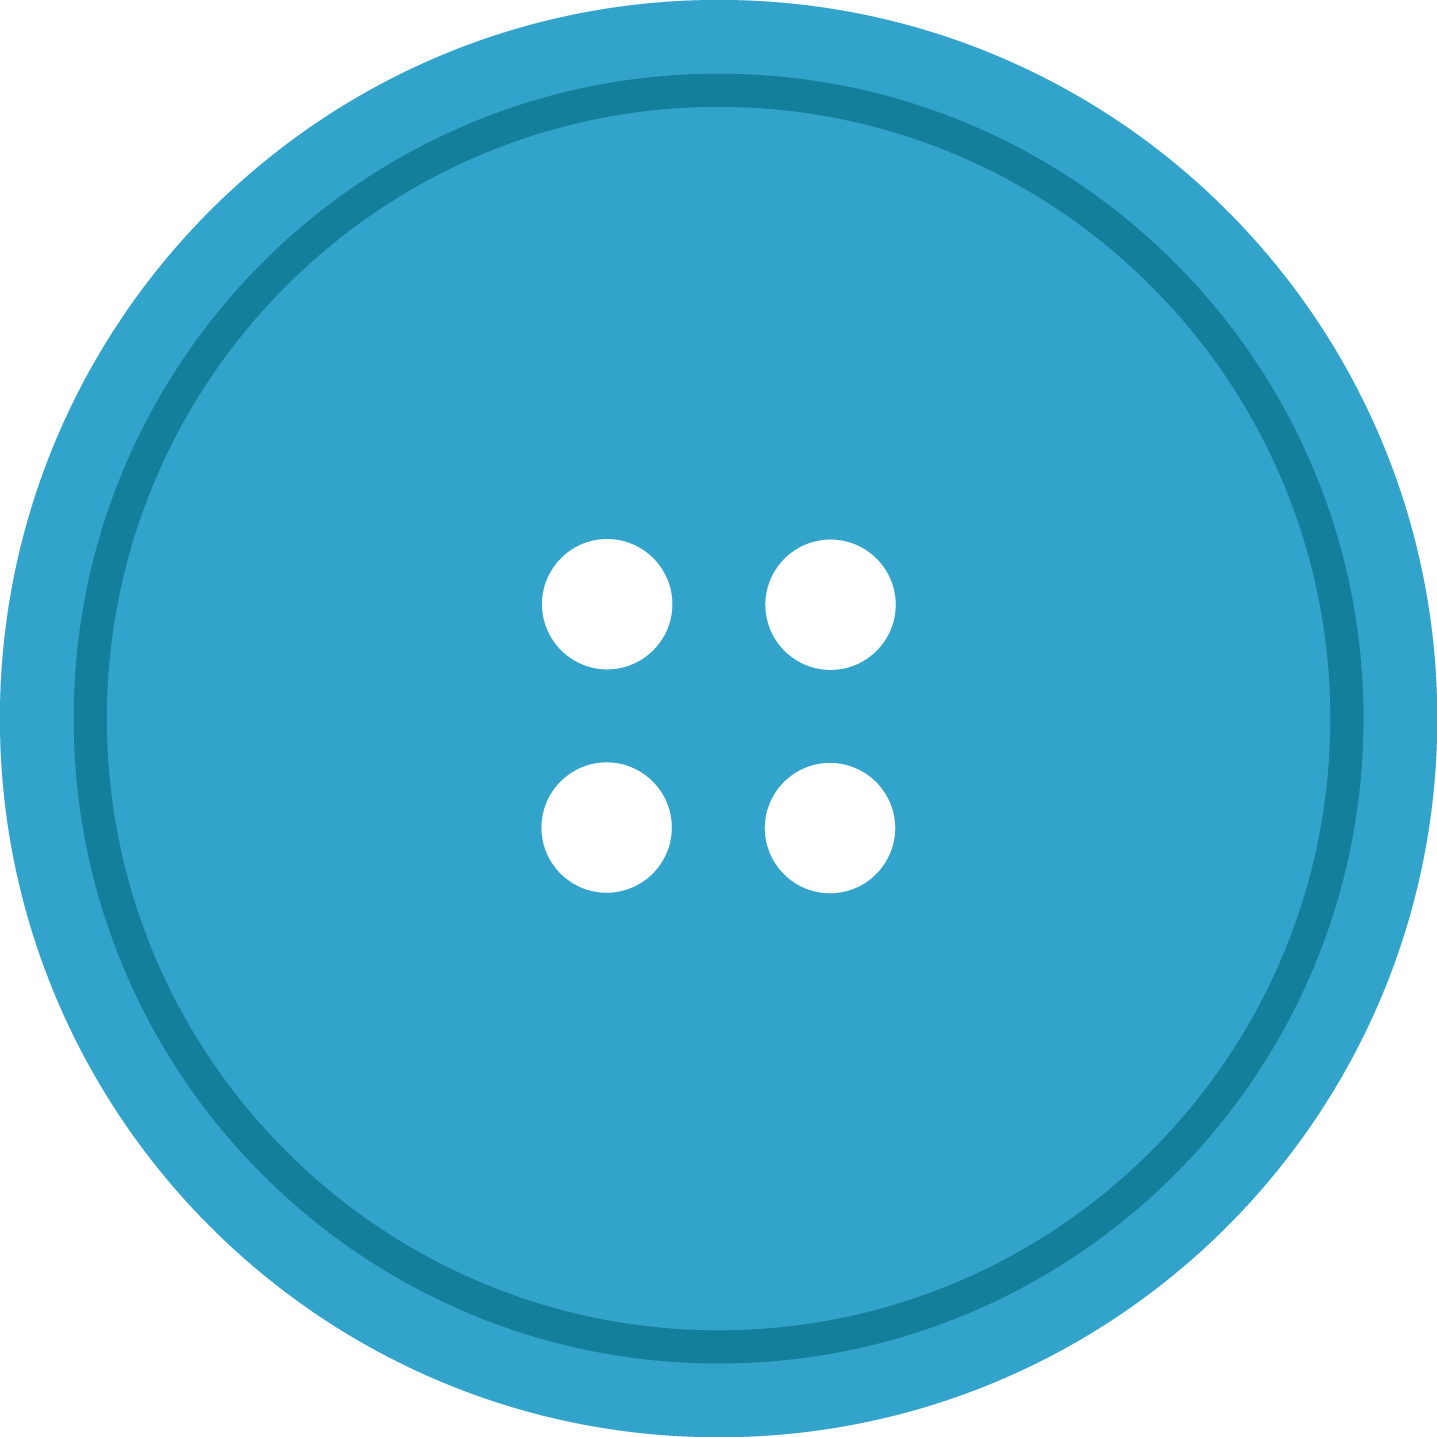 Sewing button png. Blue round cloth with